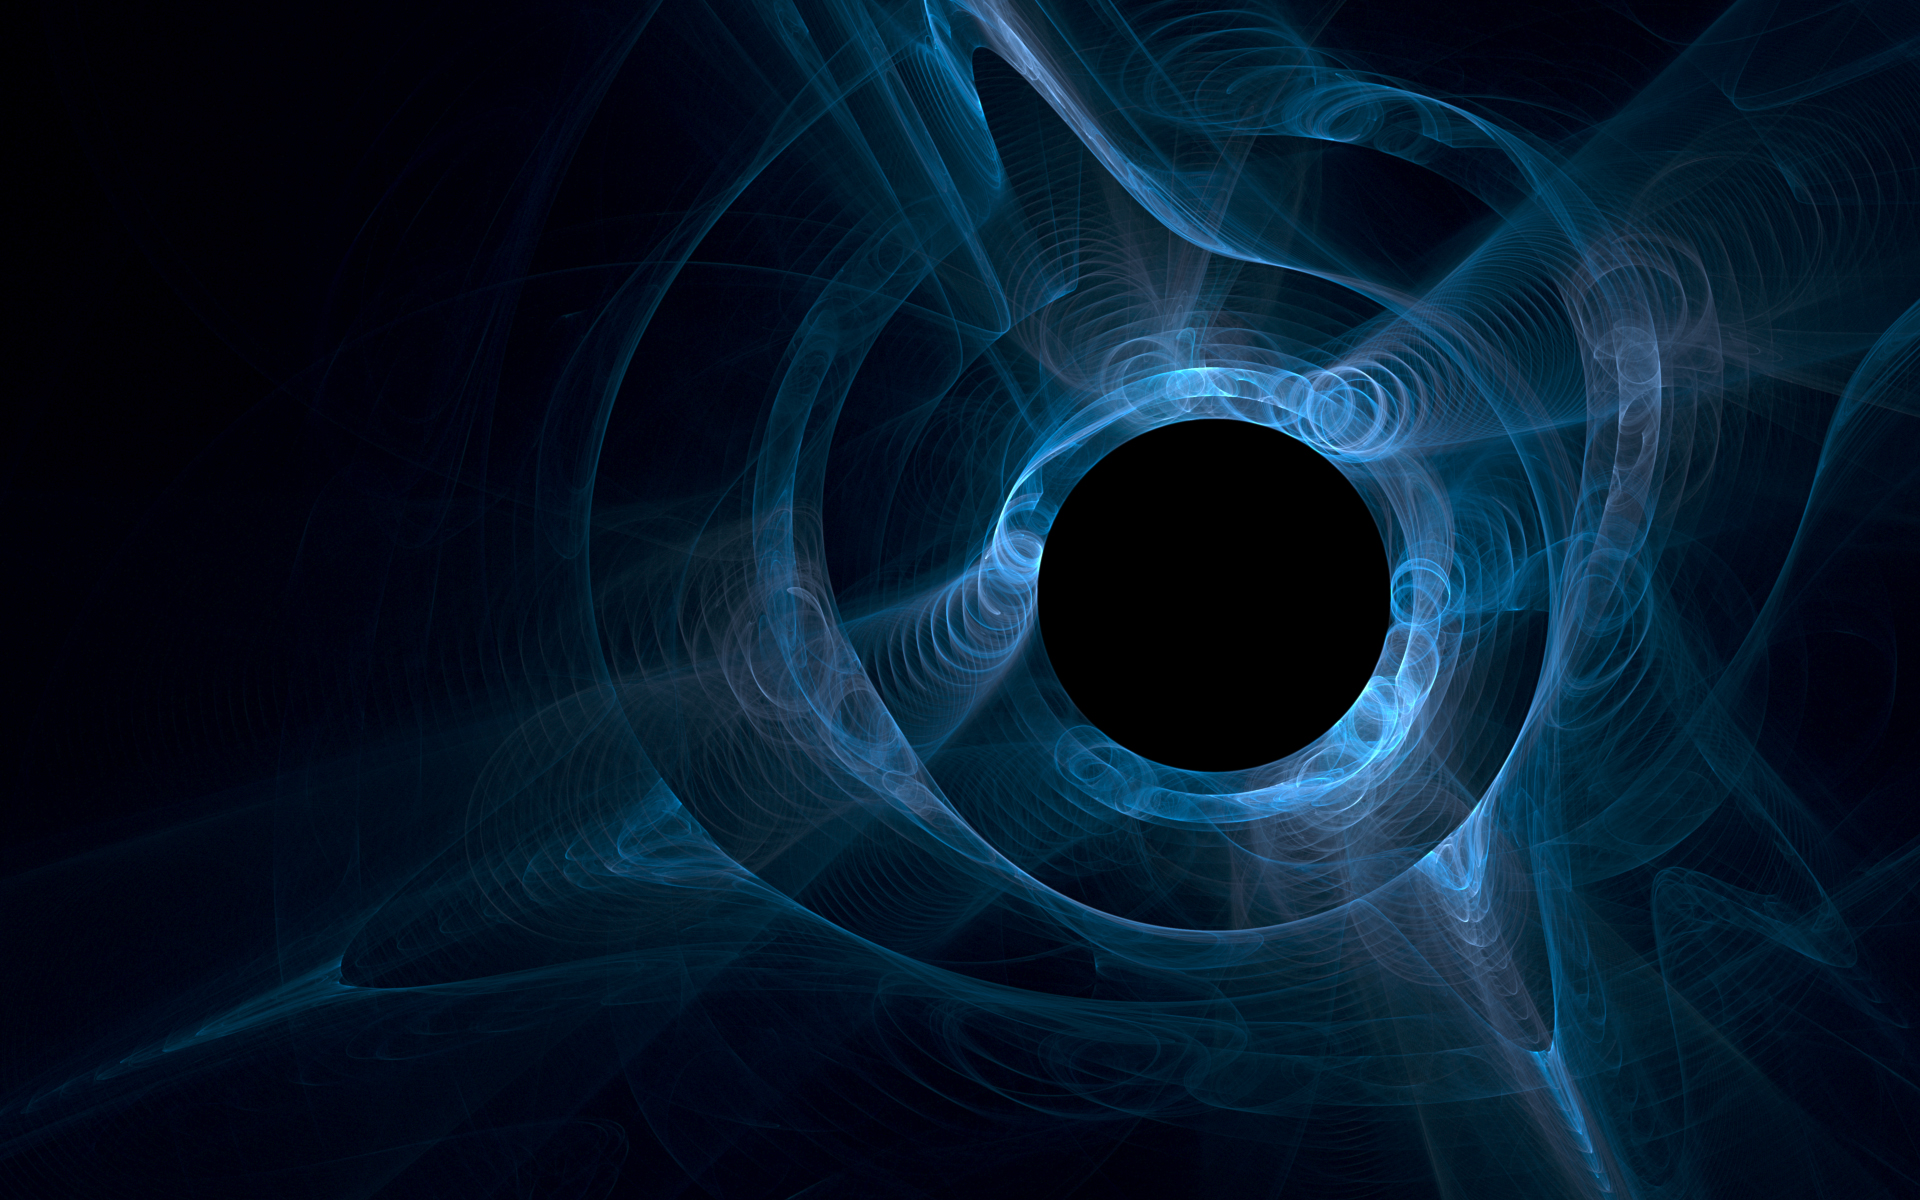 Black Hole Hd Wallpaper   Pics about space 1920x1200